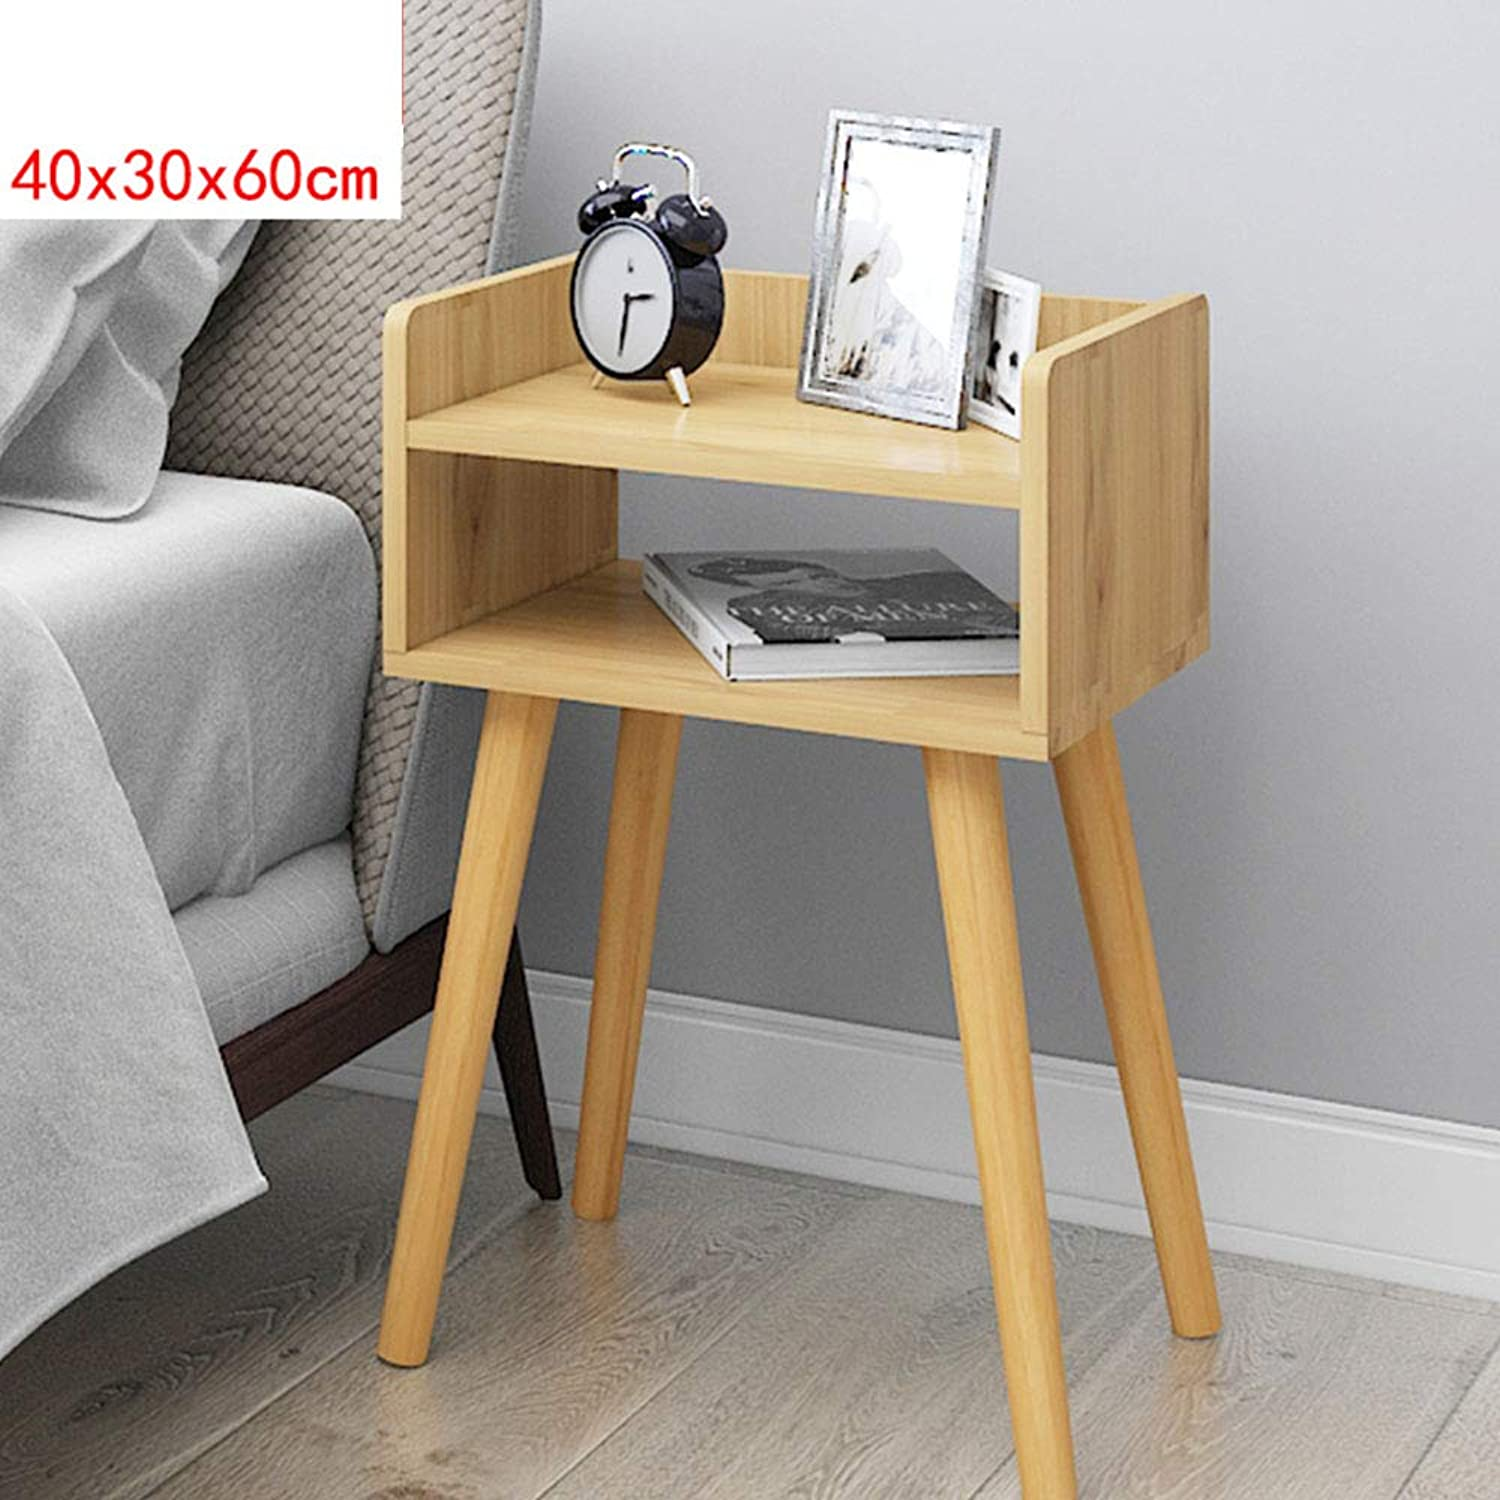 XIAODONG Modern Bedside Table Side Table Storage Table Bedroom Living Room Furniture 40 x 30 x 60CM Easy to Move (color   Wood color)